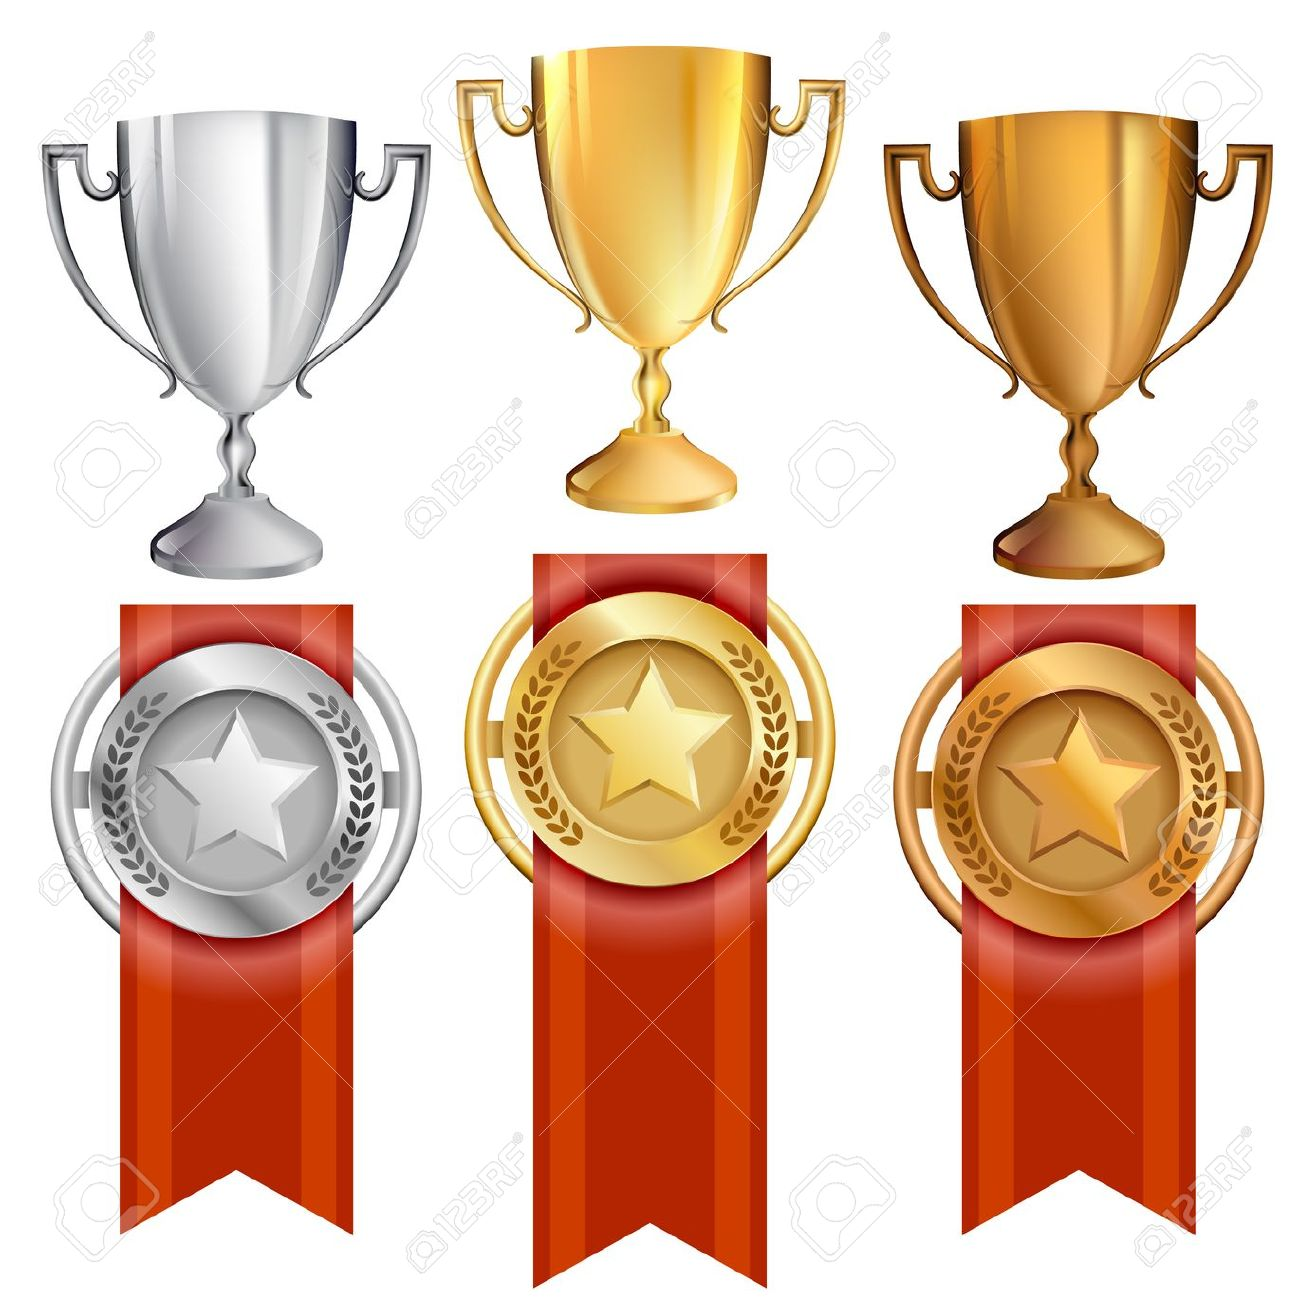 874 Awards free clipart.